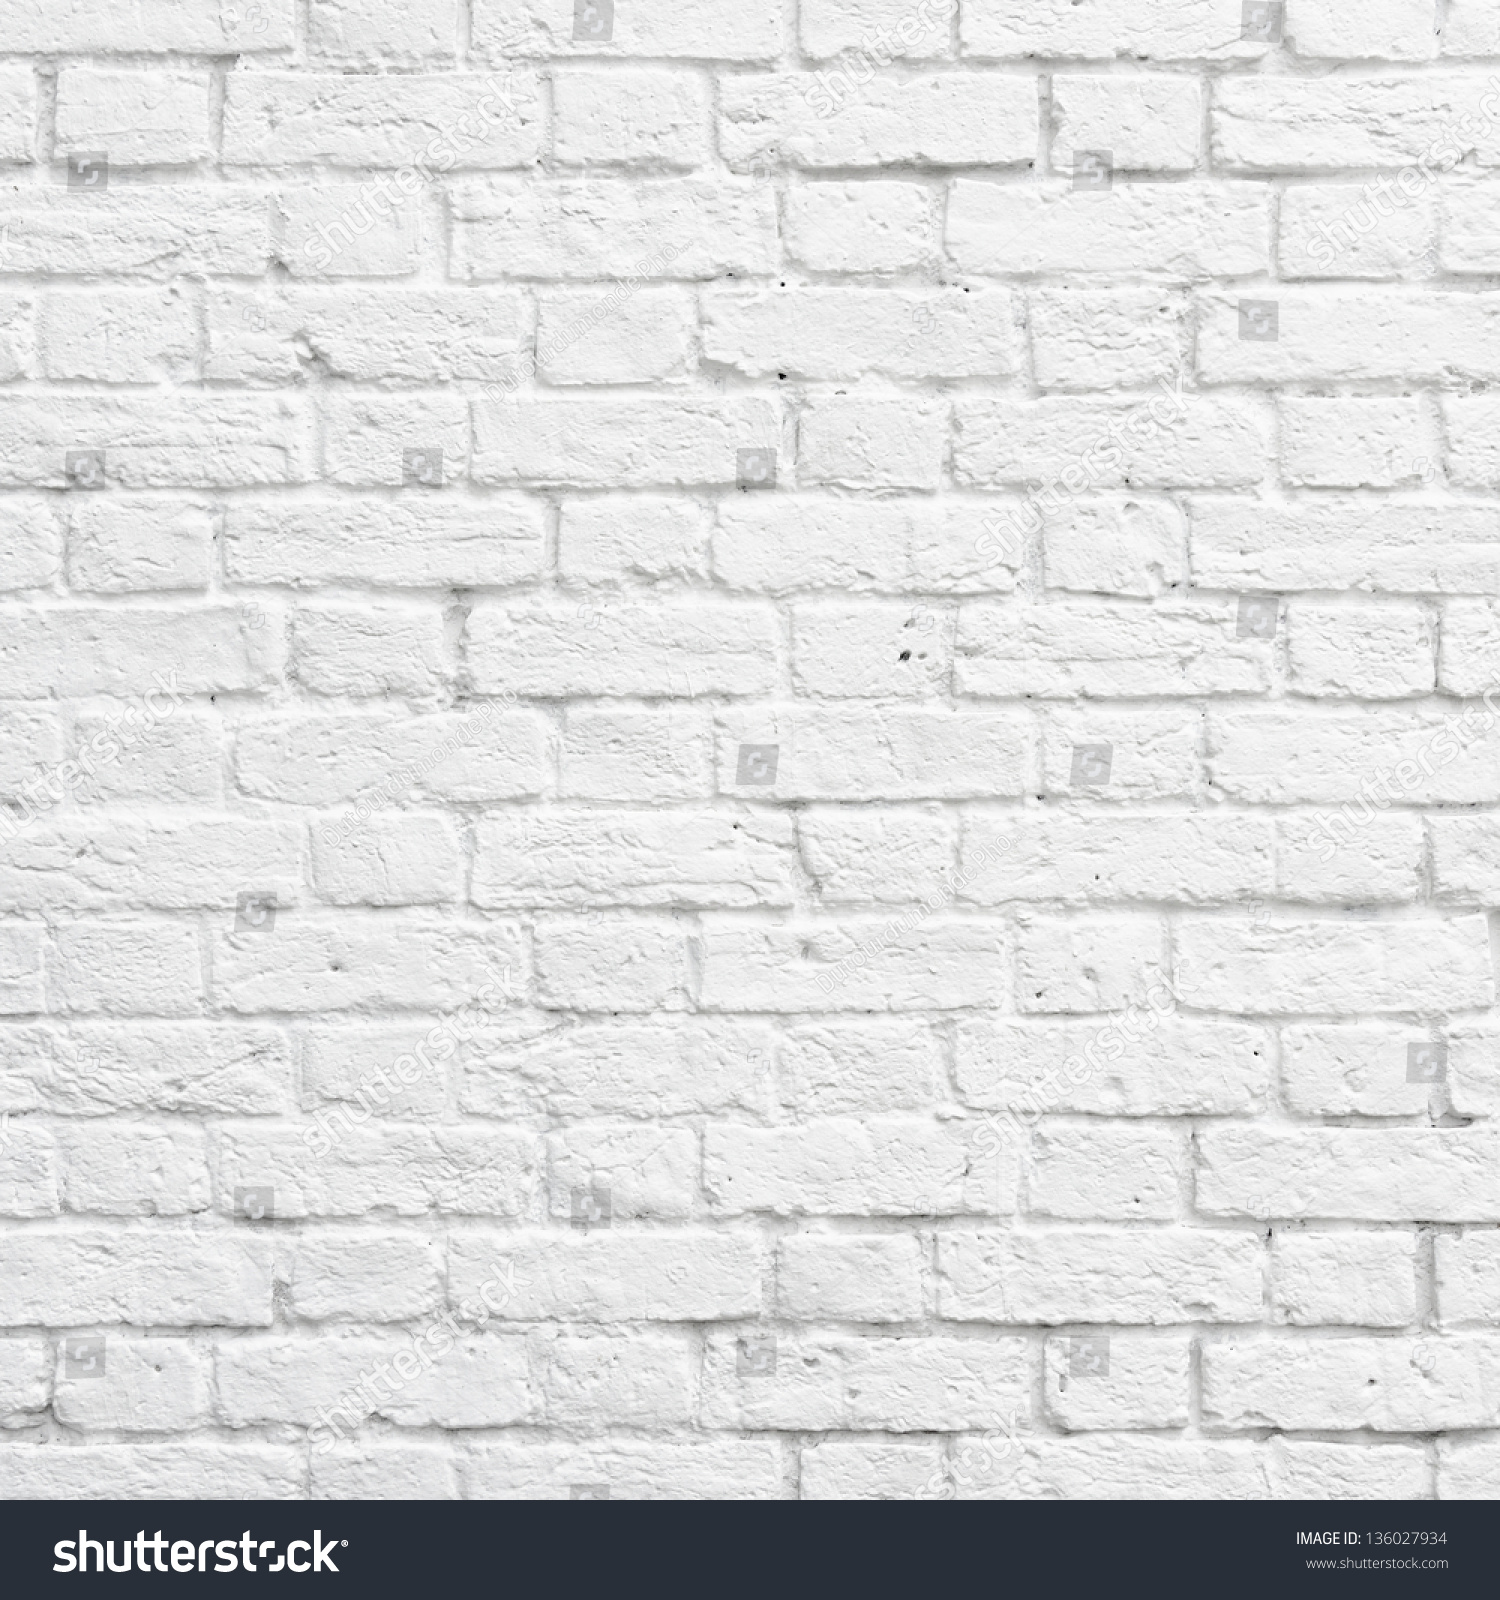 white brick wall texture or background stock photo 136027934 shutterstock. Black Bedroom Furniture Sets. Home Design Ideas